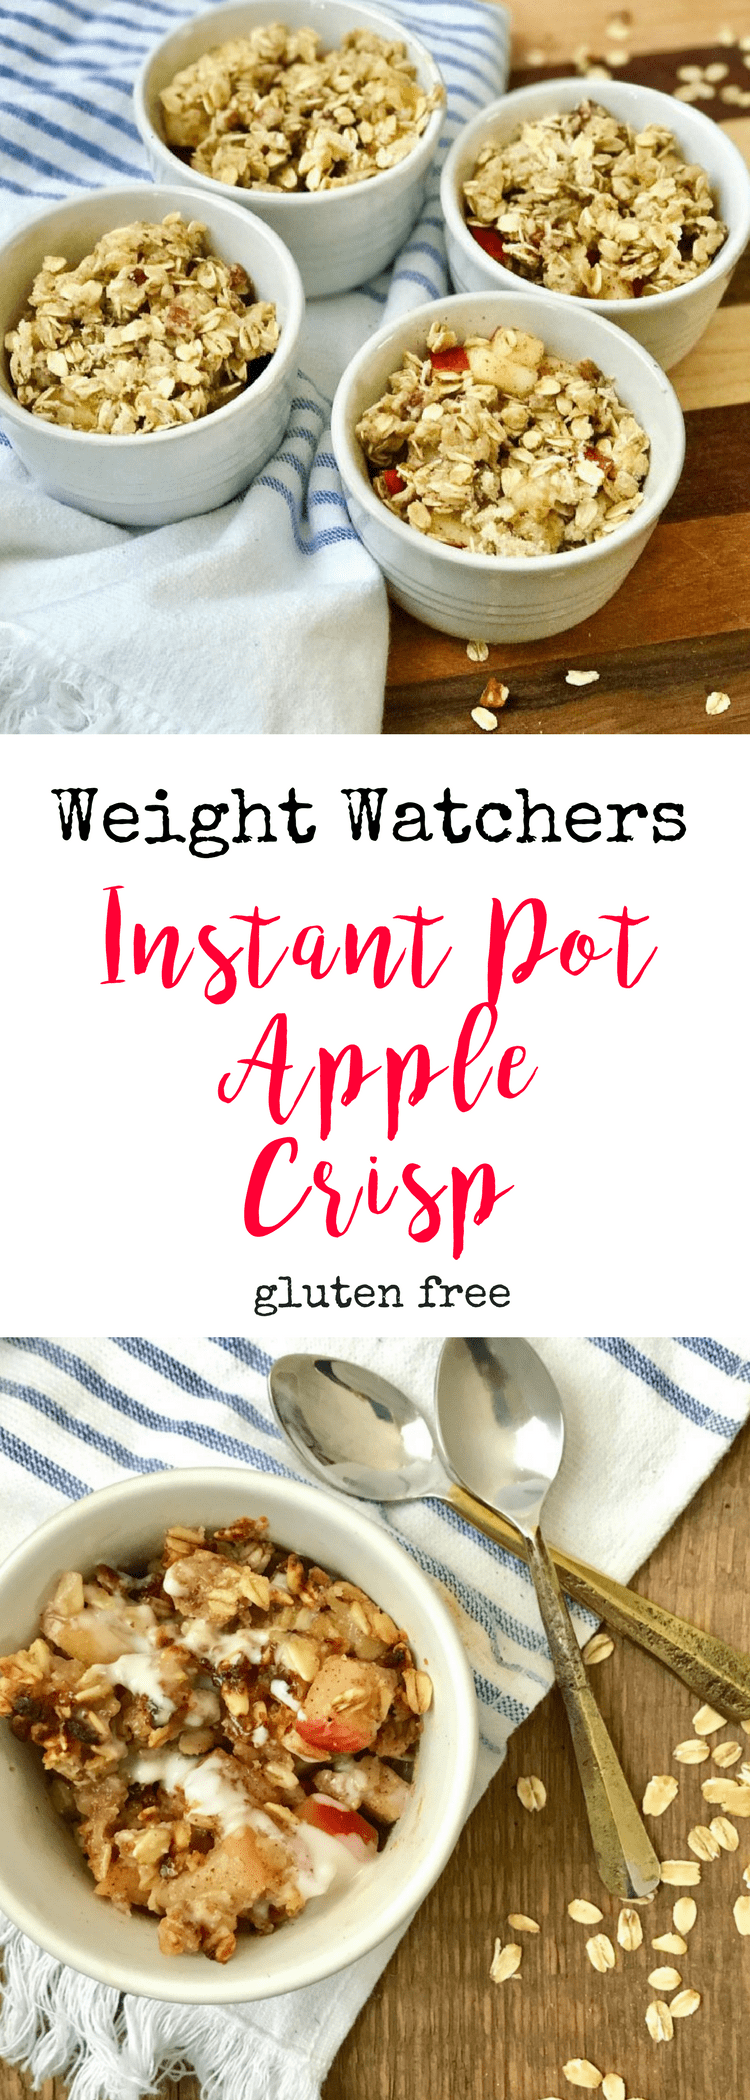 Healthy Instant Pot Apple Crisp | Gluten-free Apple Crisp - Confessions of a Fit Foodie